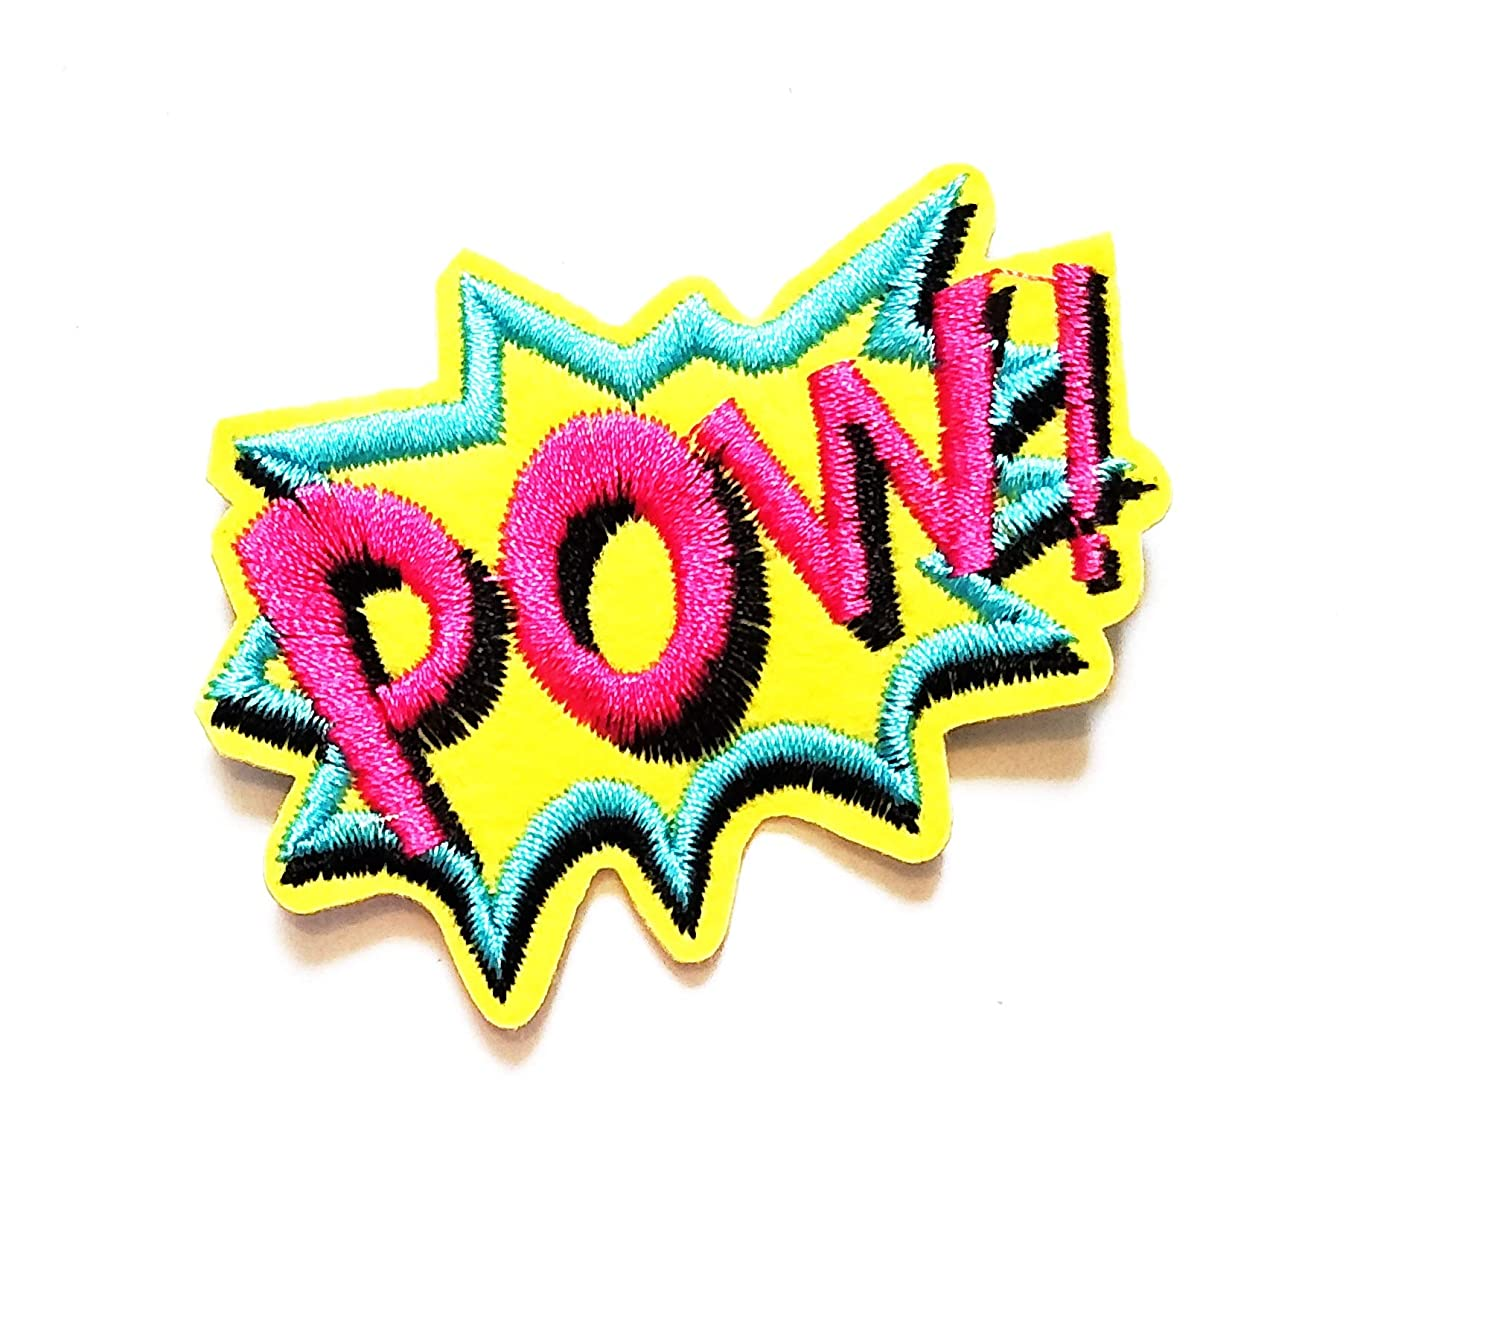 2.8'' X 2'' Yellow POW! Cartoon patch WOW! superhero comics retro fun Patch logo jacket t-shirt Jeans Polo Patch Iron on Embroidered Logo Sign Badge Comics Cartoon patch by Tour les jours shop